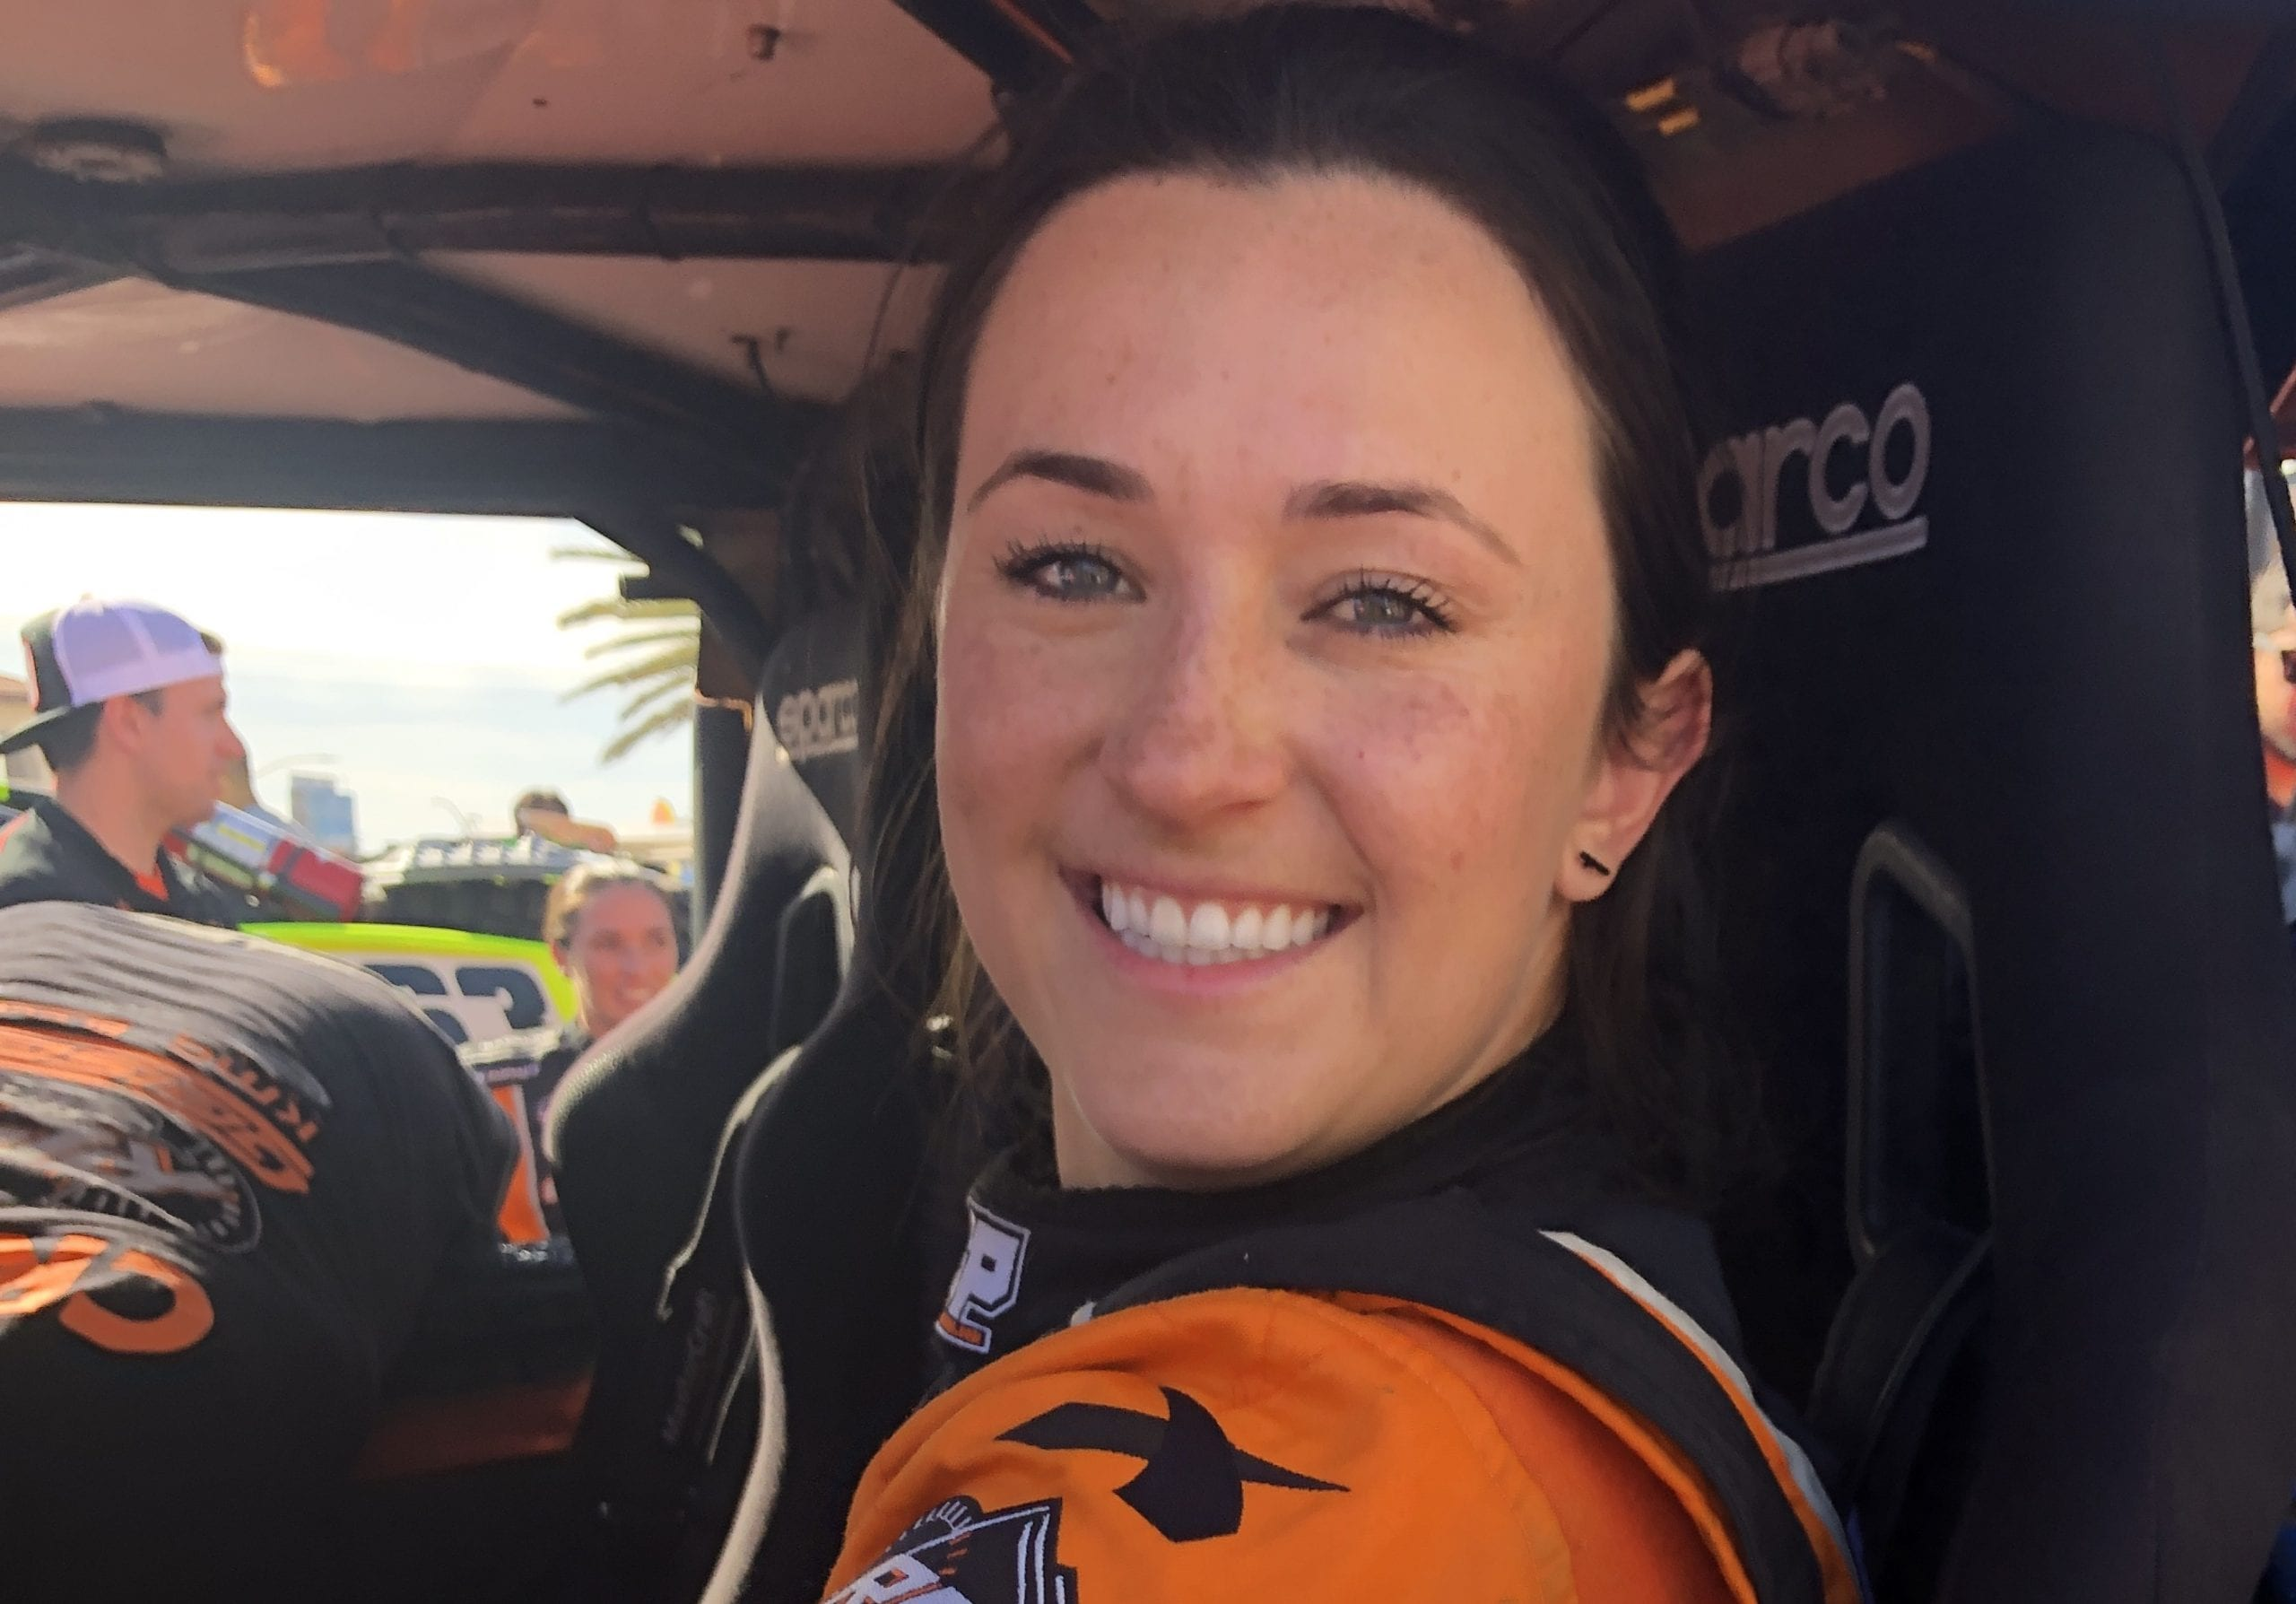 VP RACING FUELS AGREES TO MULTI-YEAR SPONSORSHIP WITH OFF-ROAD RACER SARA PRICE